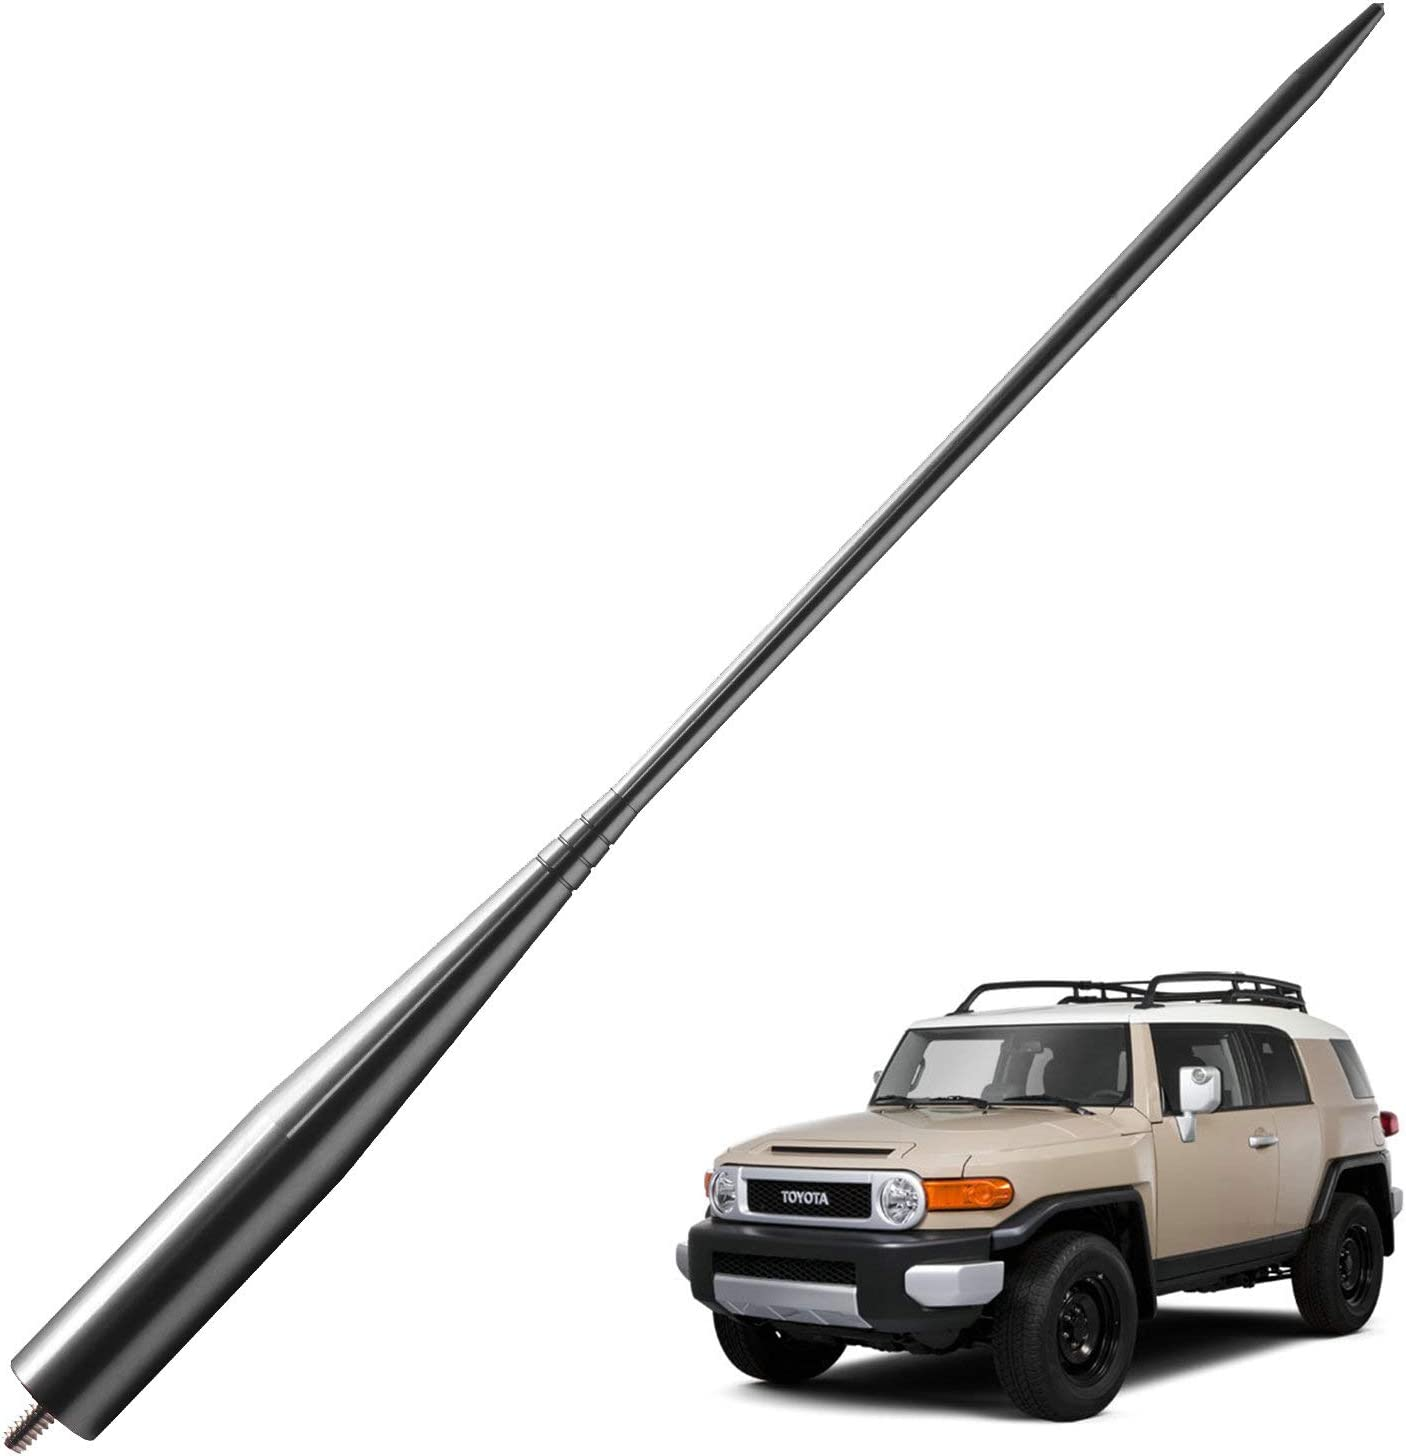 13 inches-Titanium JAPower Replacement Antenna Compatible with Toyota Tundra 2014-2018